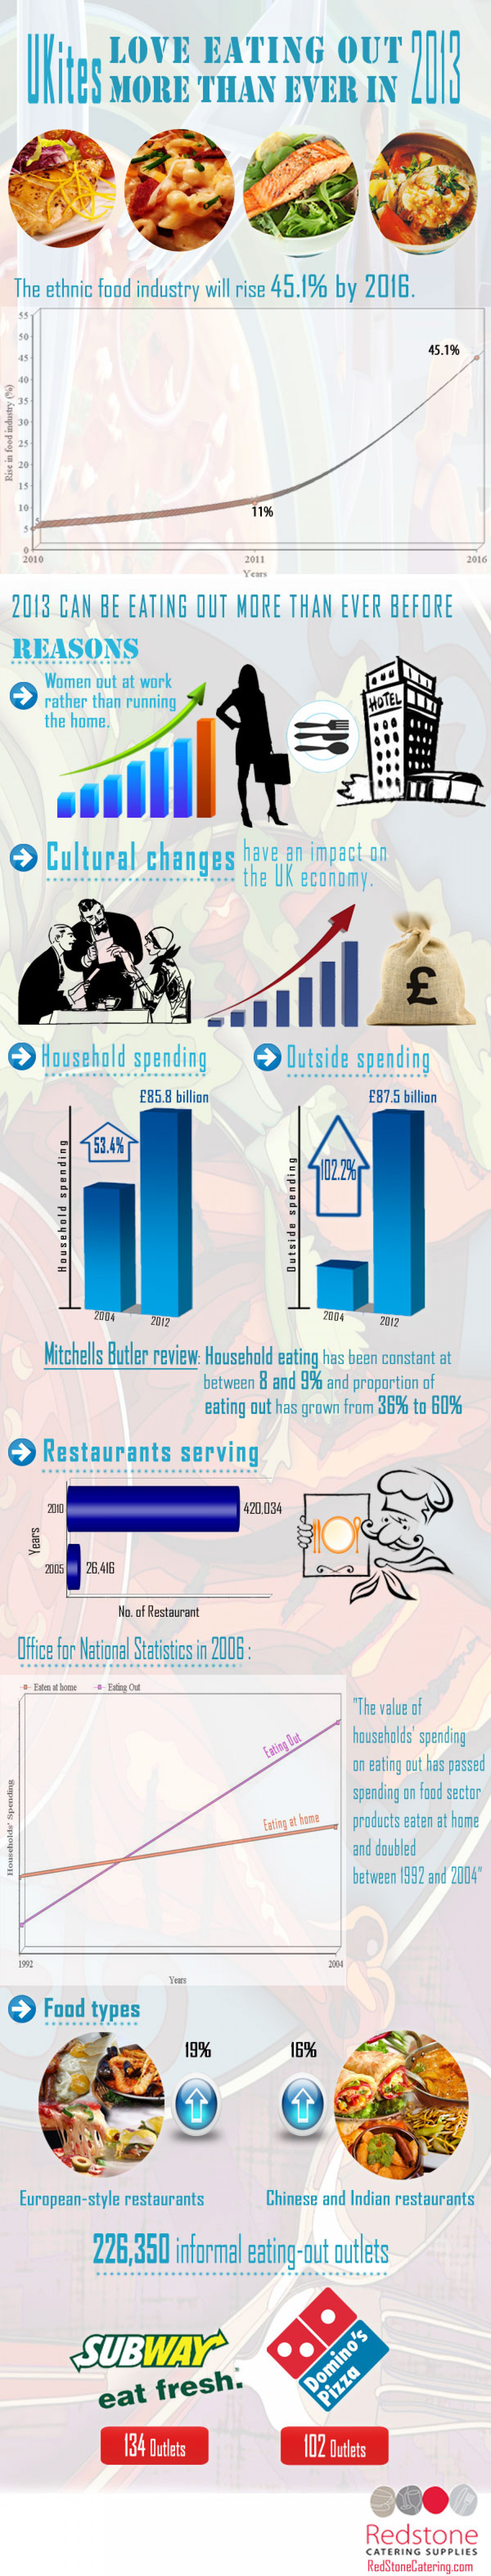 UKites Love Eating Out More Than Ever in 2013 Infographic